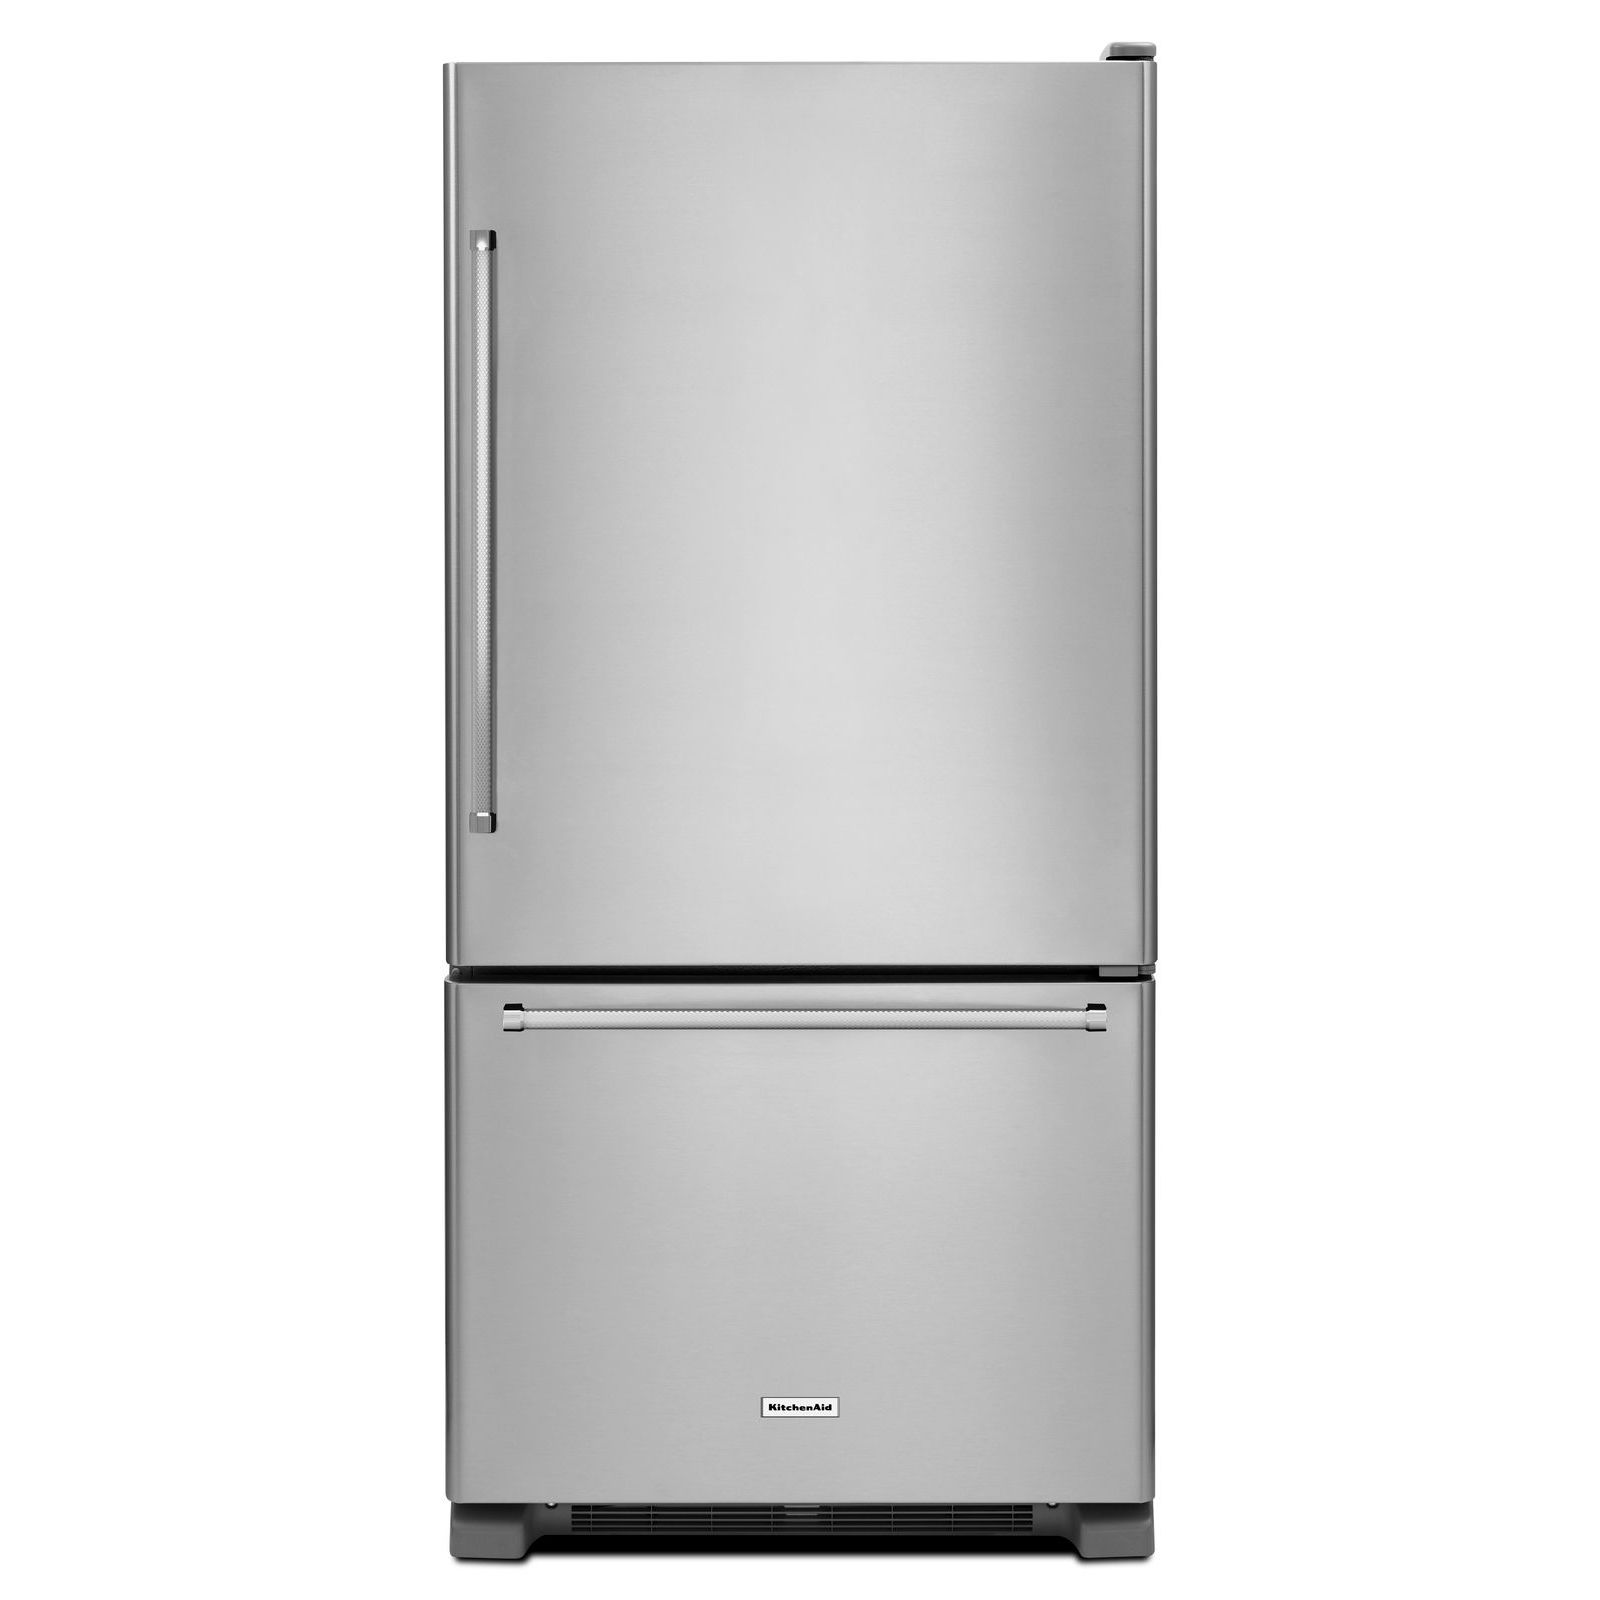 KRBR102ESS-22-cu-ft-Bottom-Mount-Refrigerator-Stainless-Steel